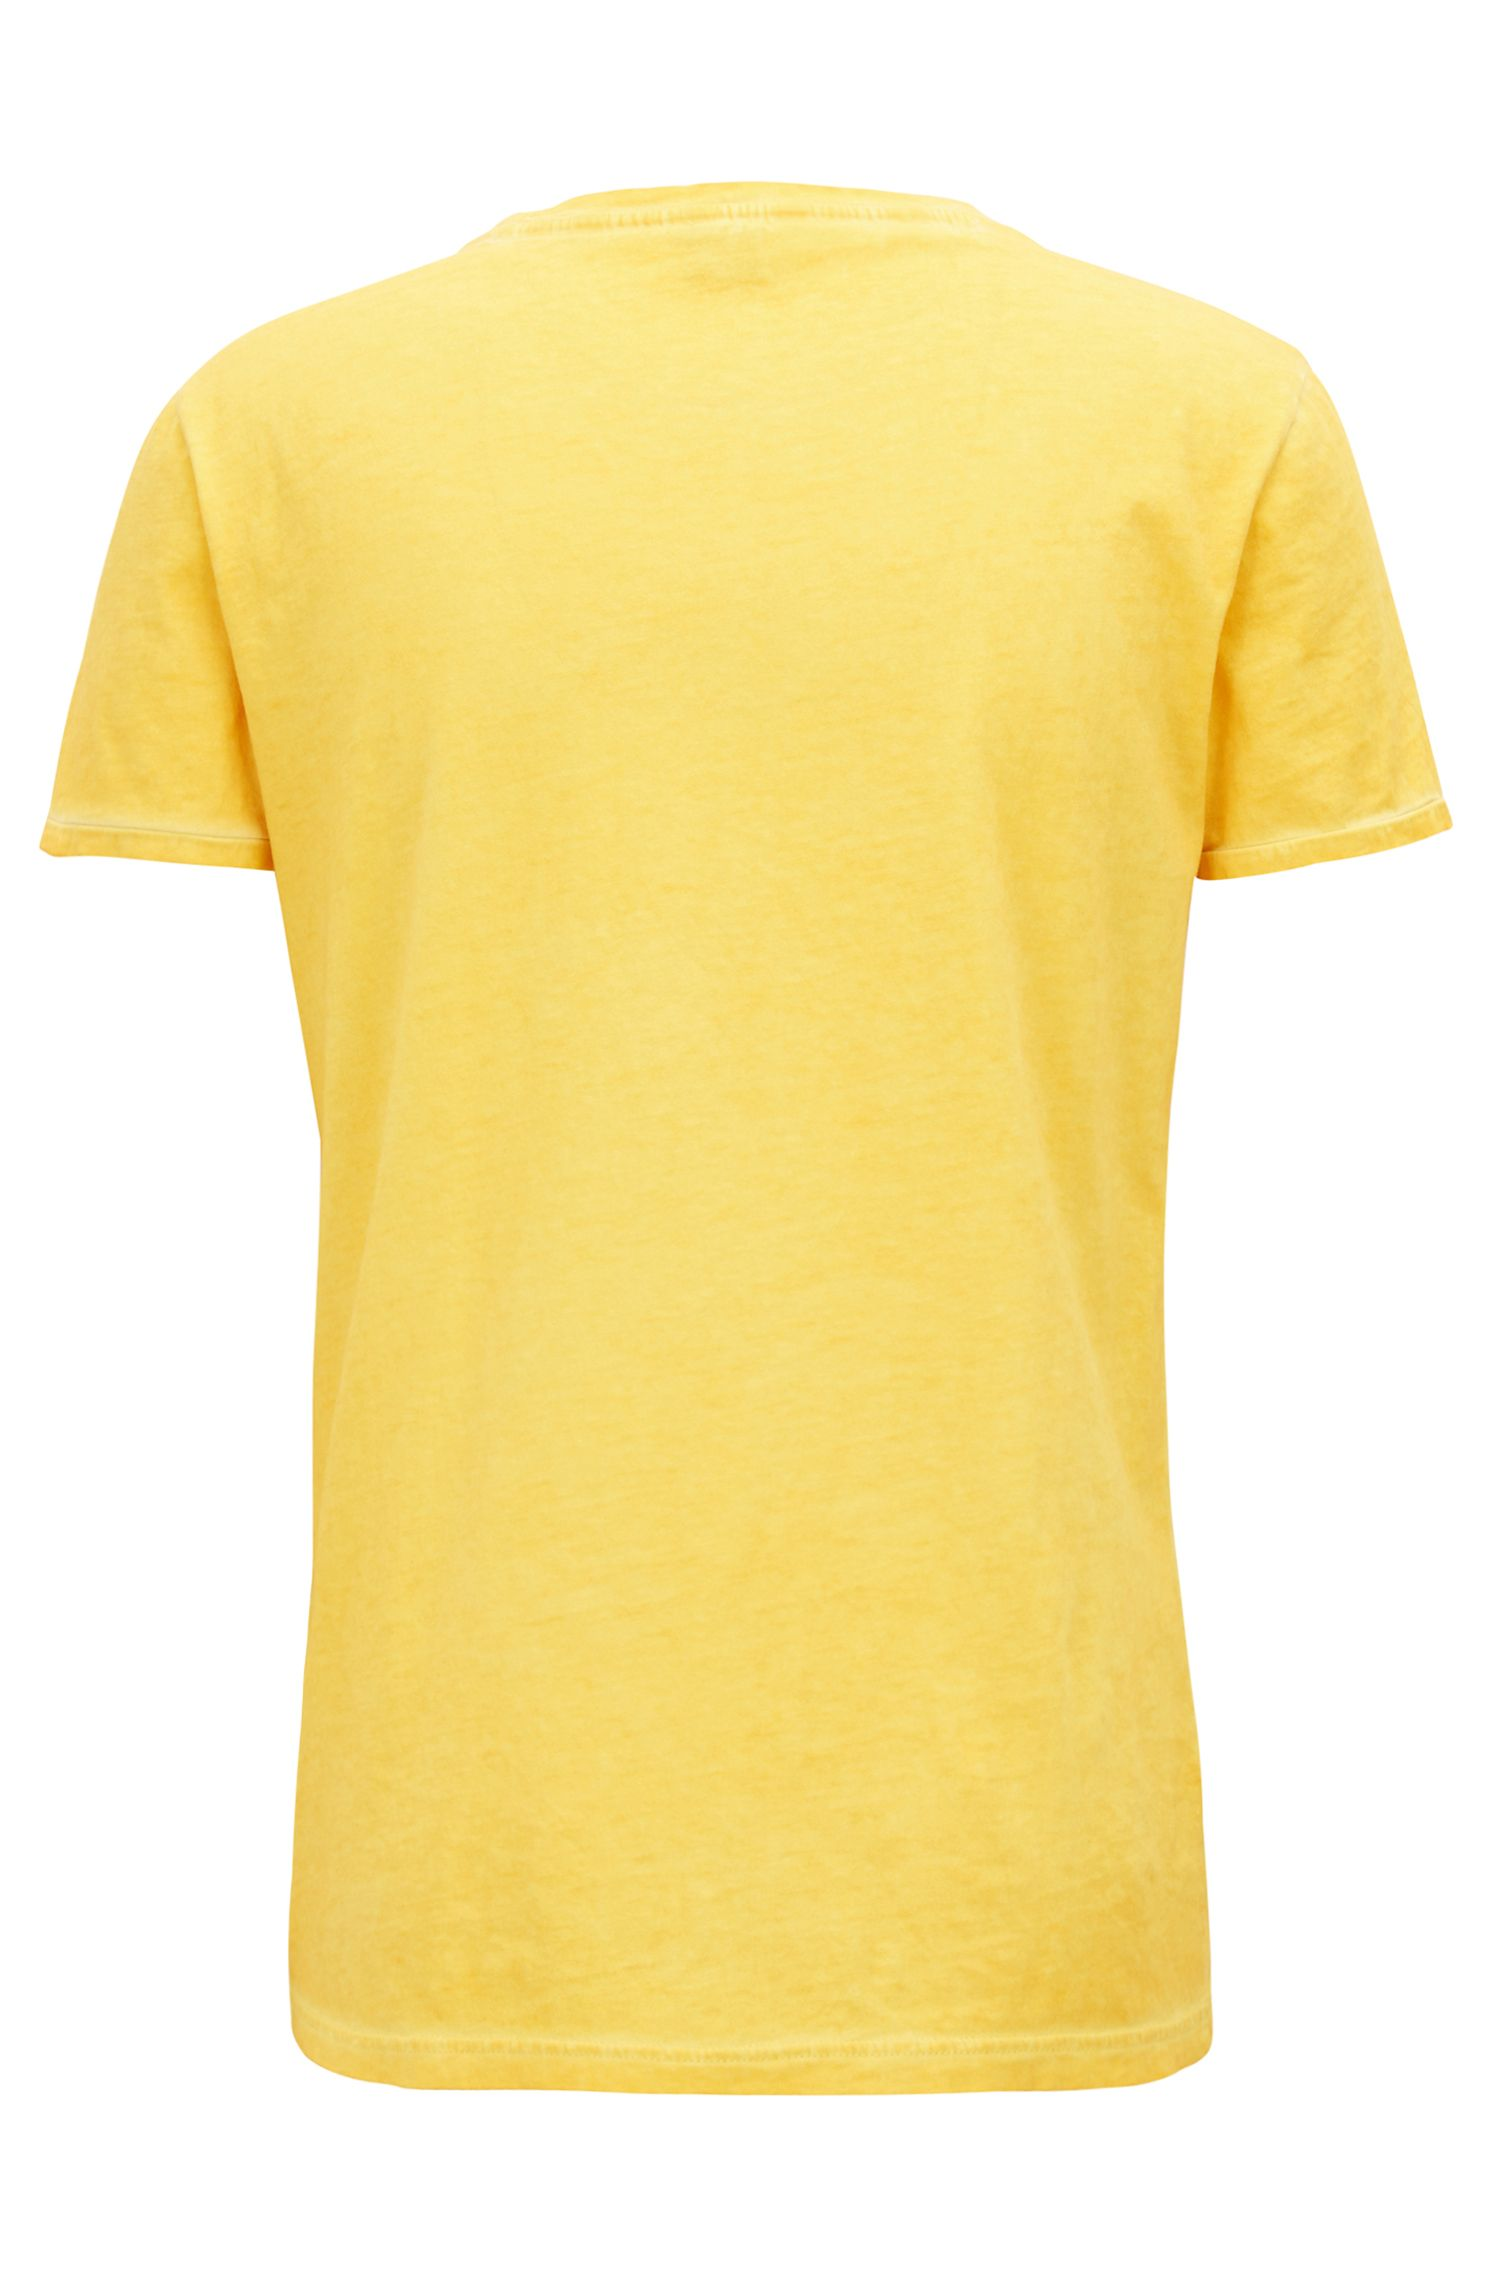 Regular-fit garment-dyed T-shirt in cotton, Yellow